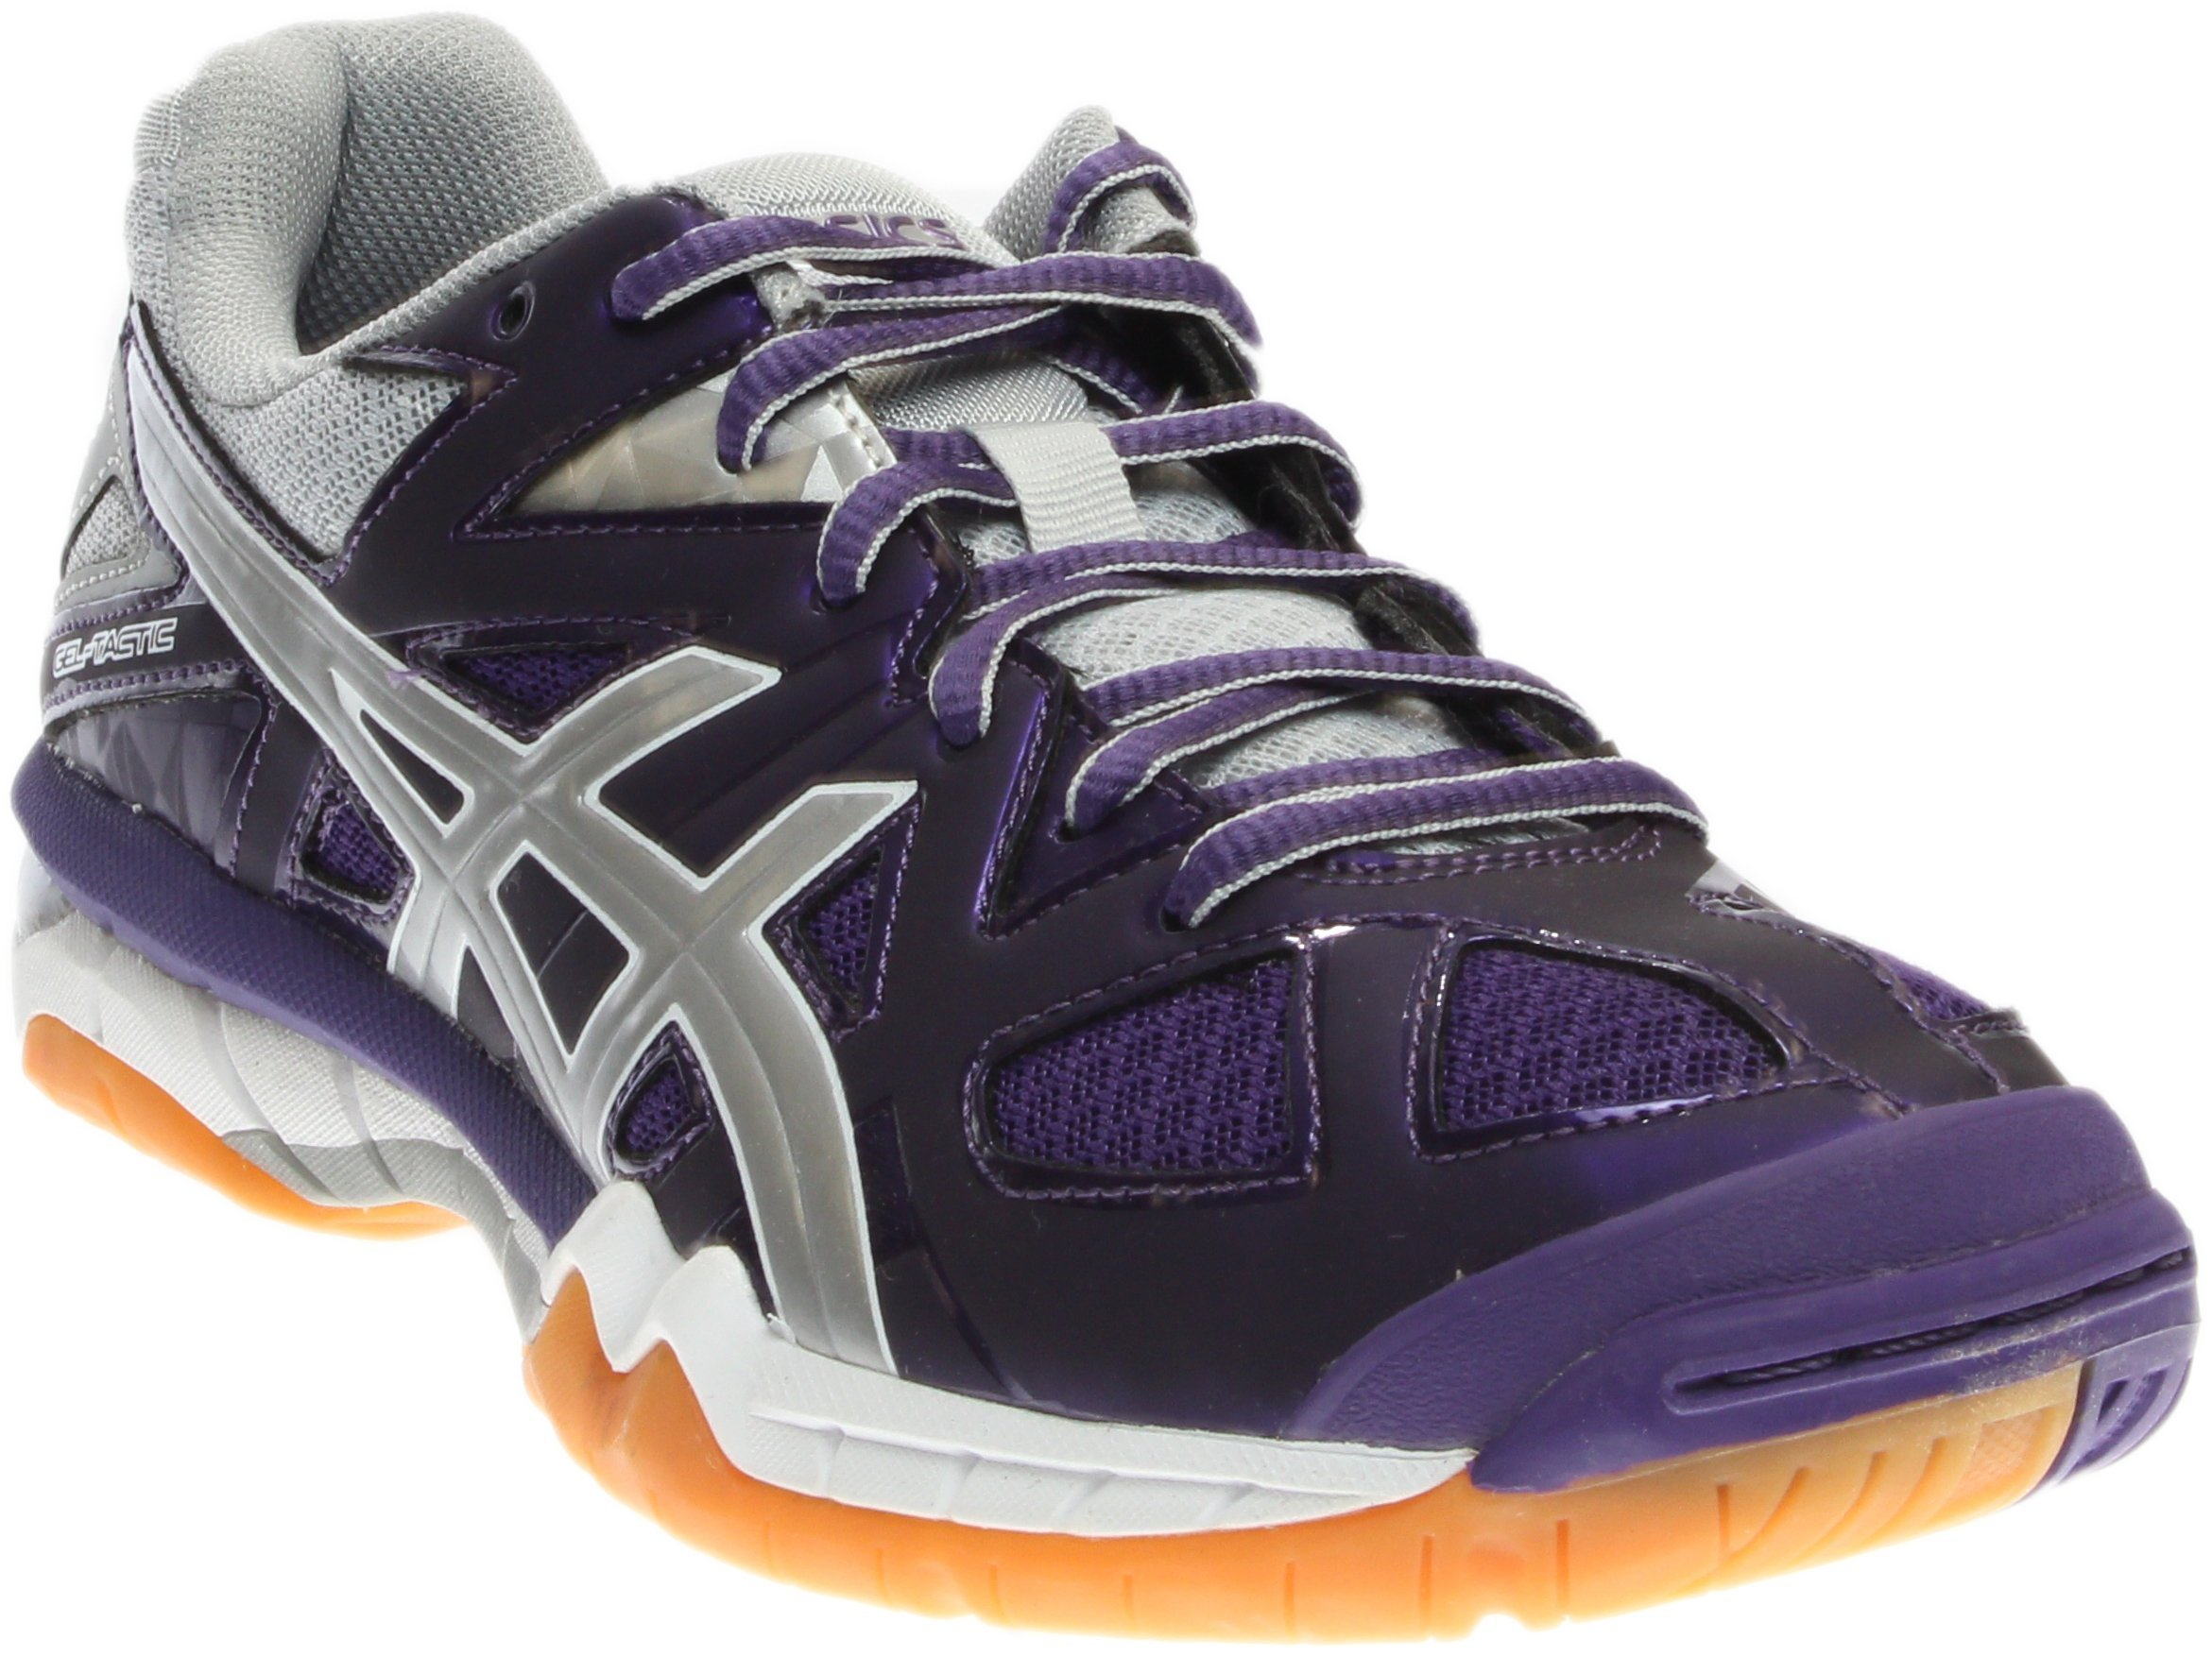 ASICS Women's Gel Tactic Volleyball Shoe, Purple/Silver/White, 9.5 M US